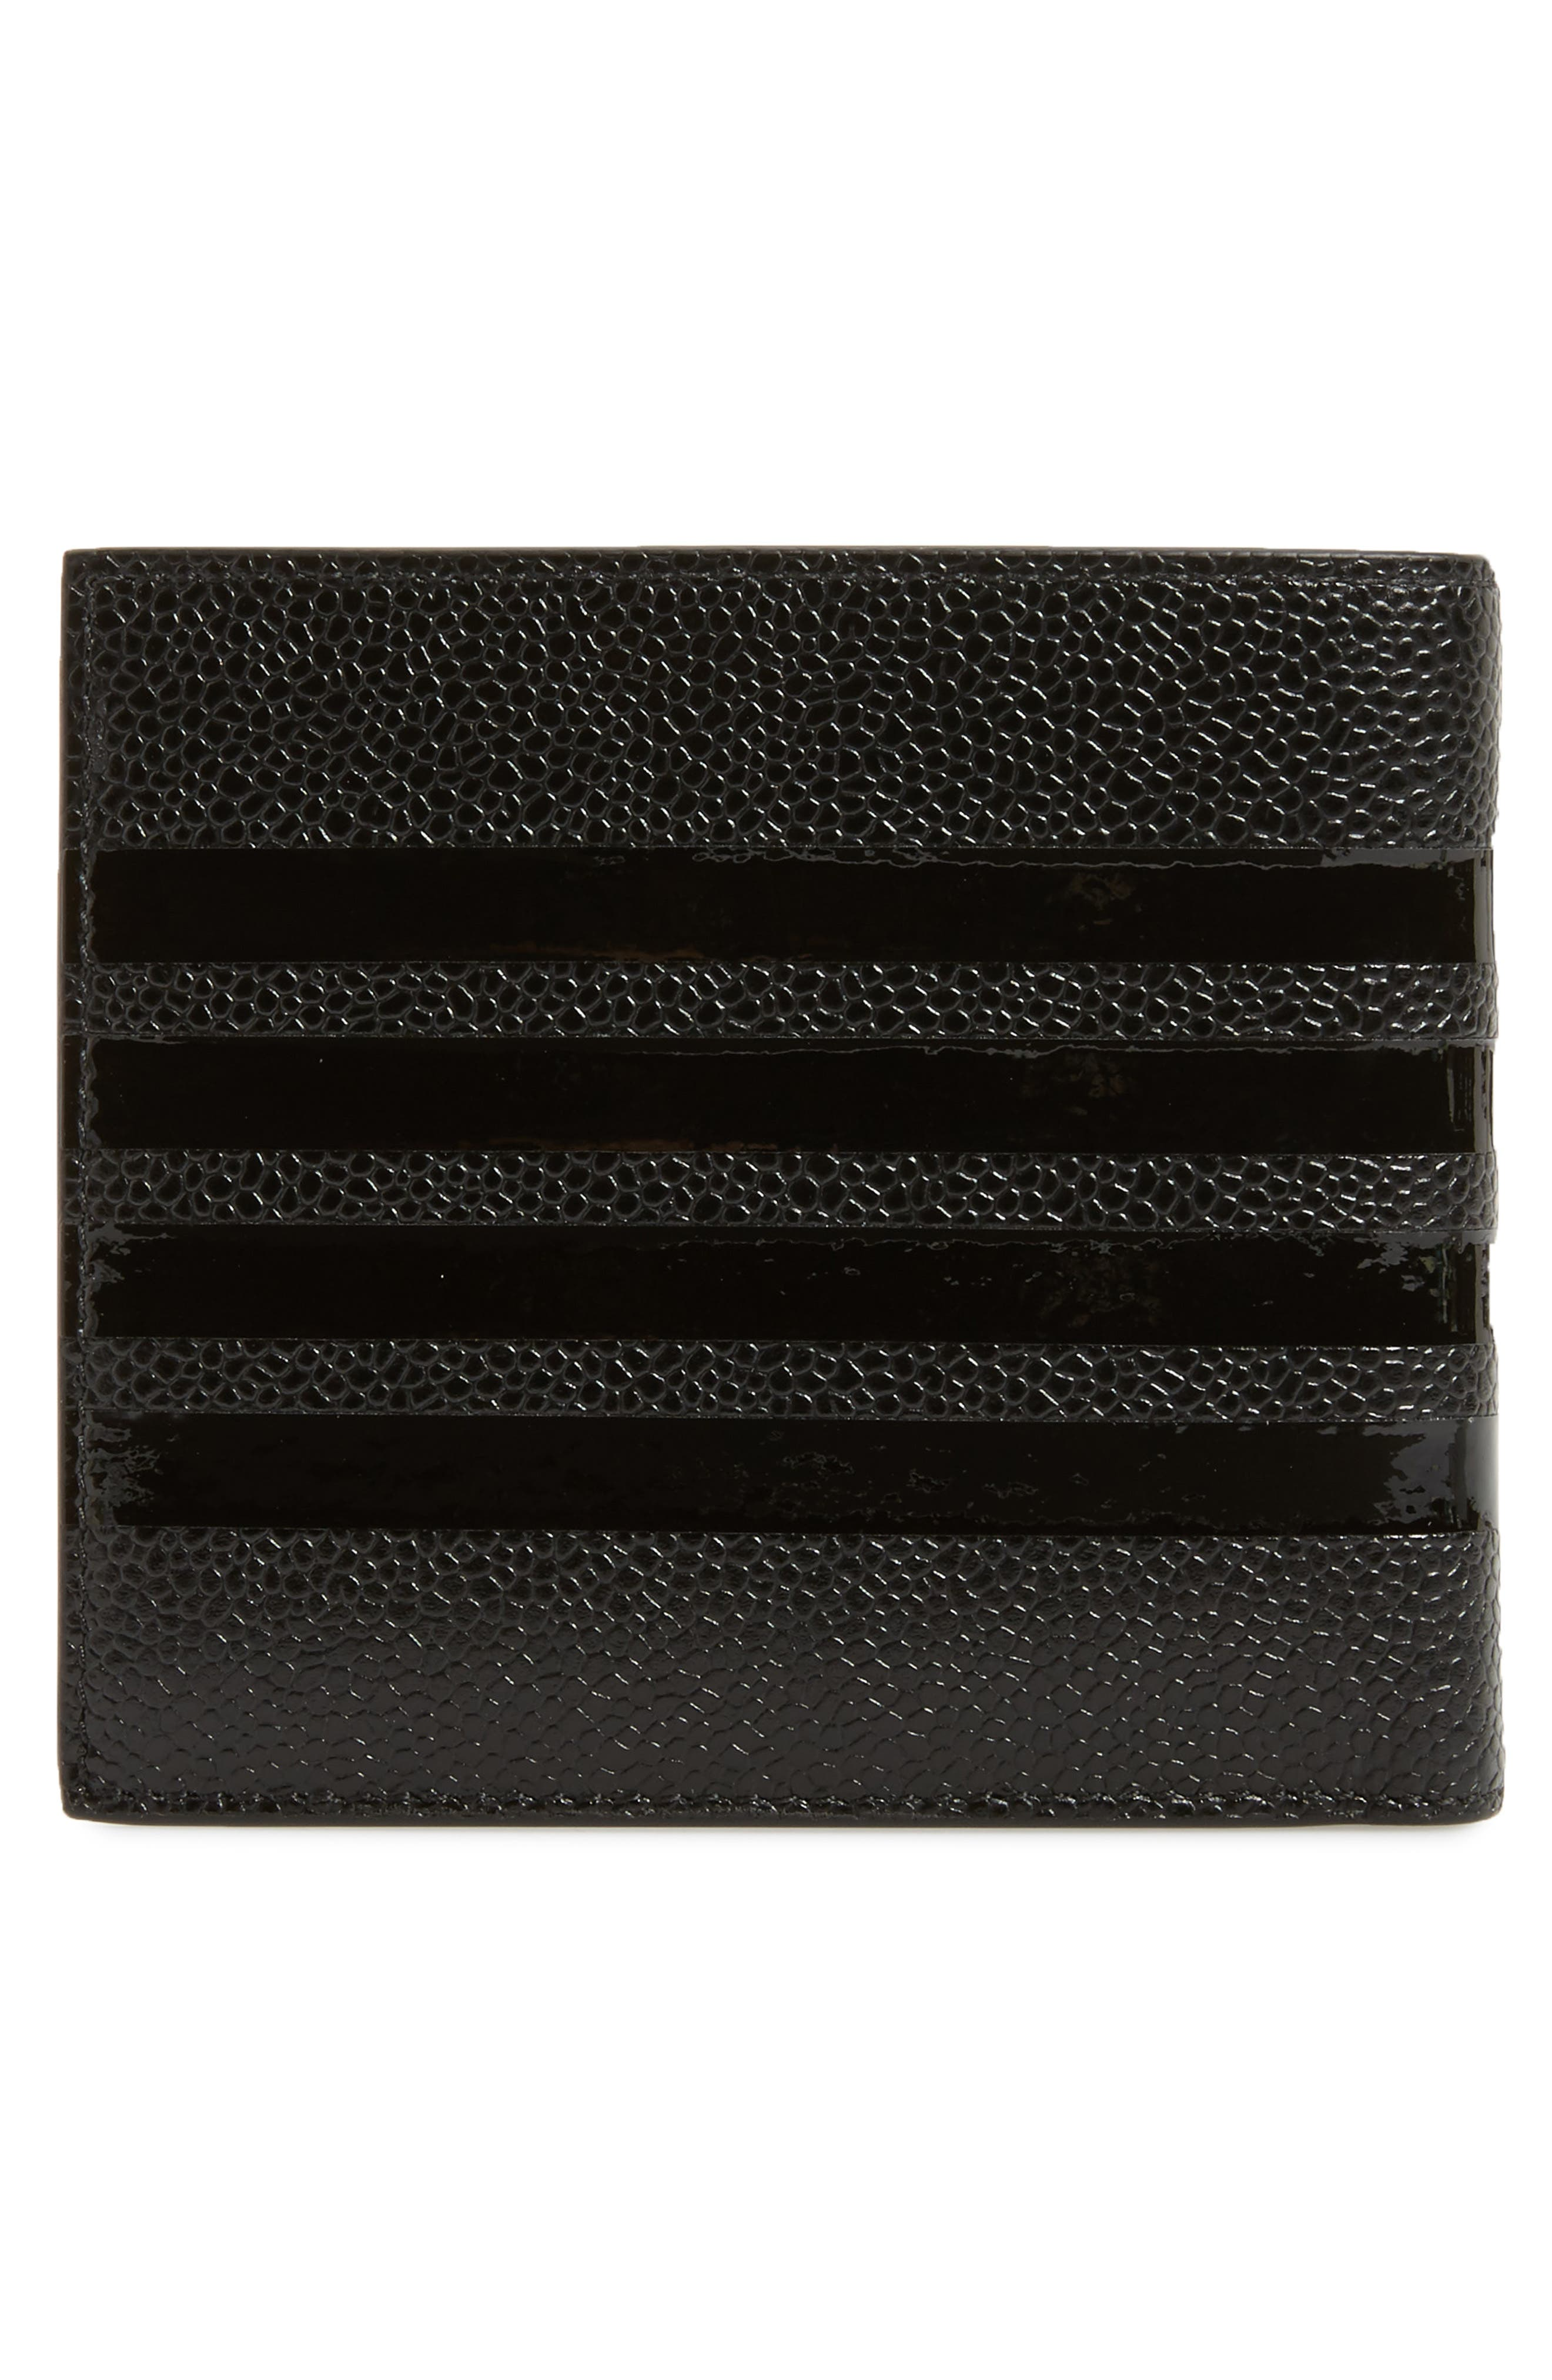 THOM BROWNE,                             Patent Leather Bifold Wallet,                             Alternate thumbnail 3, color,                             001